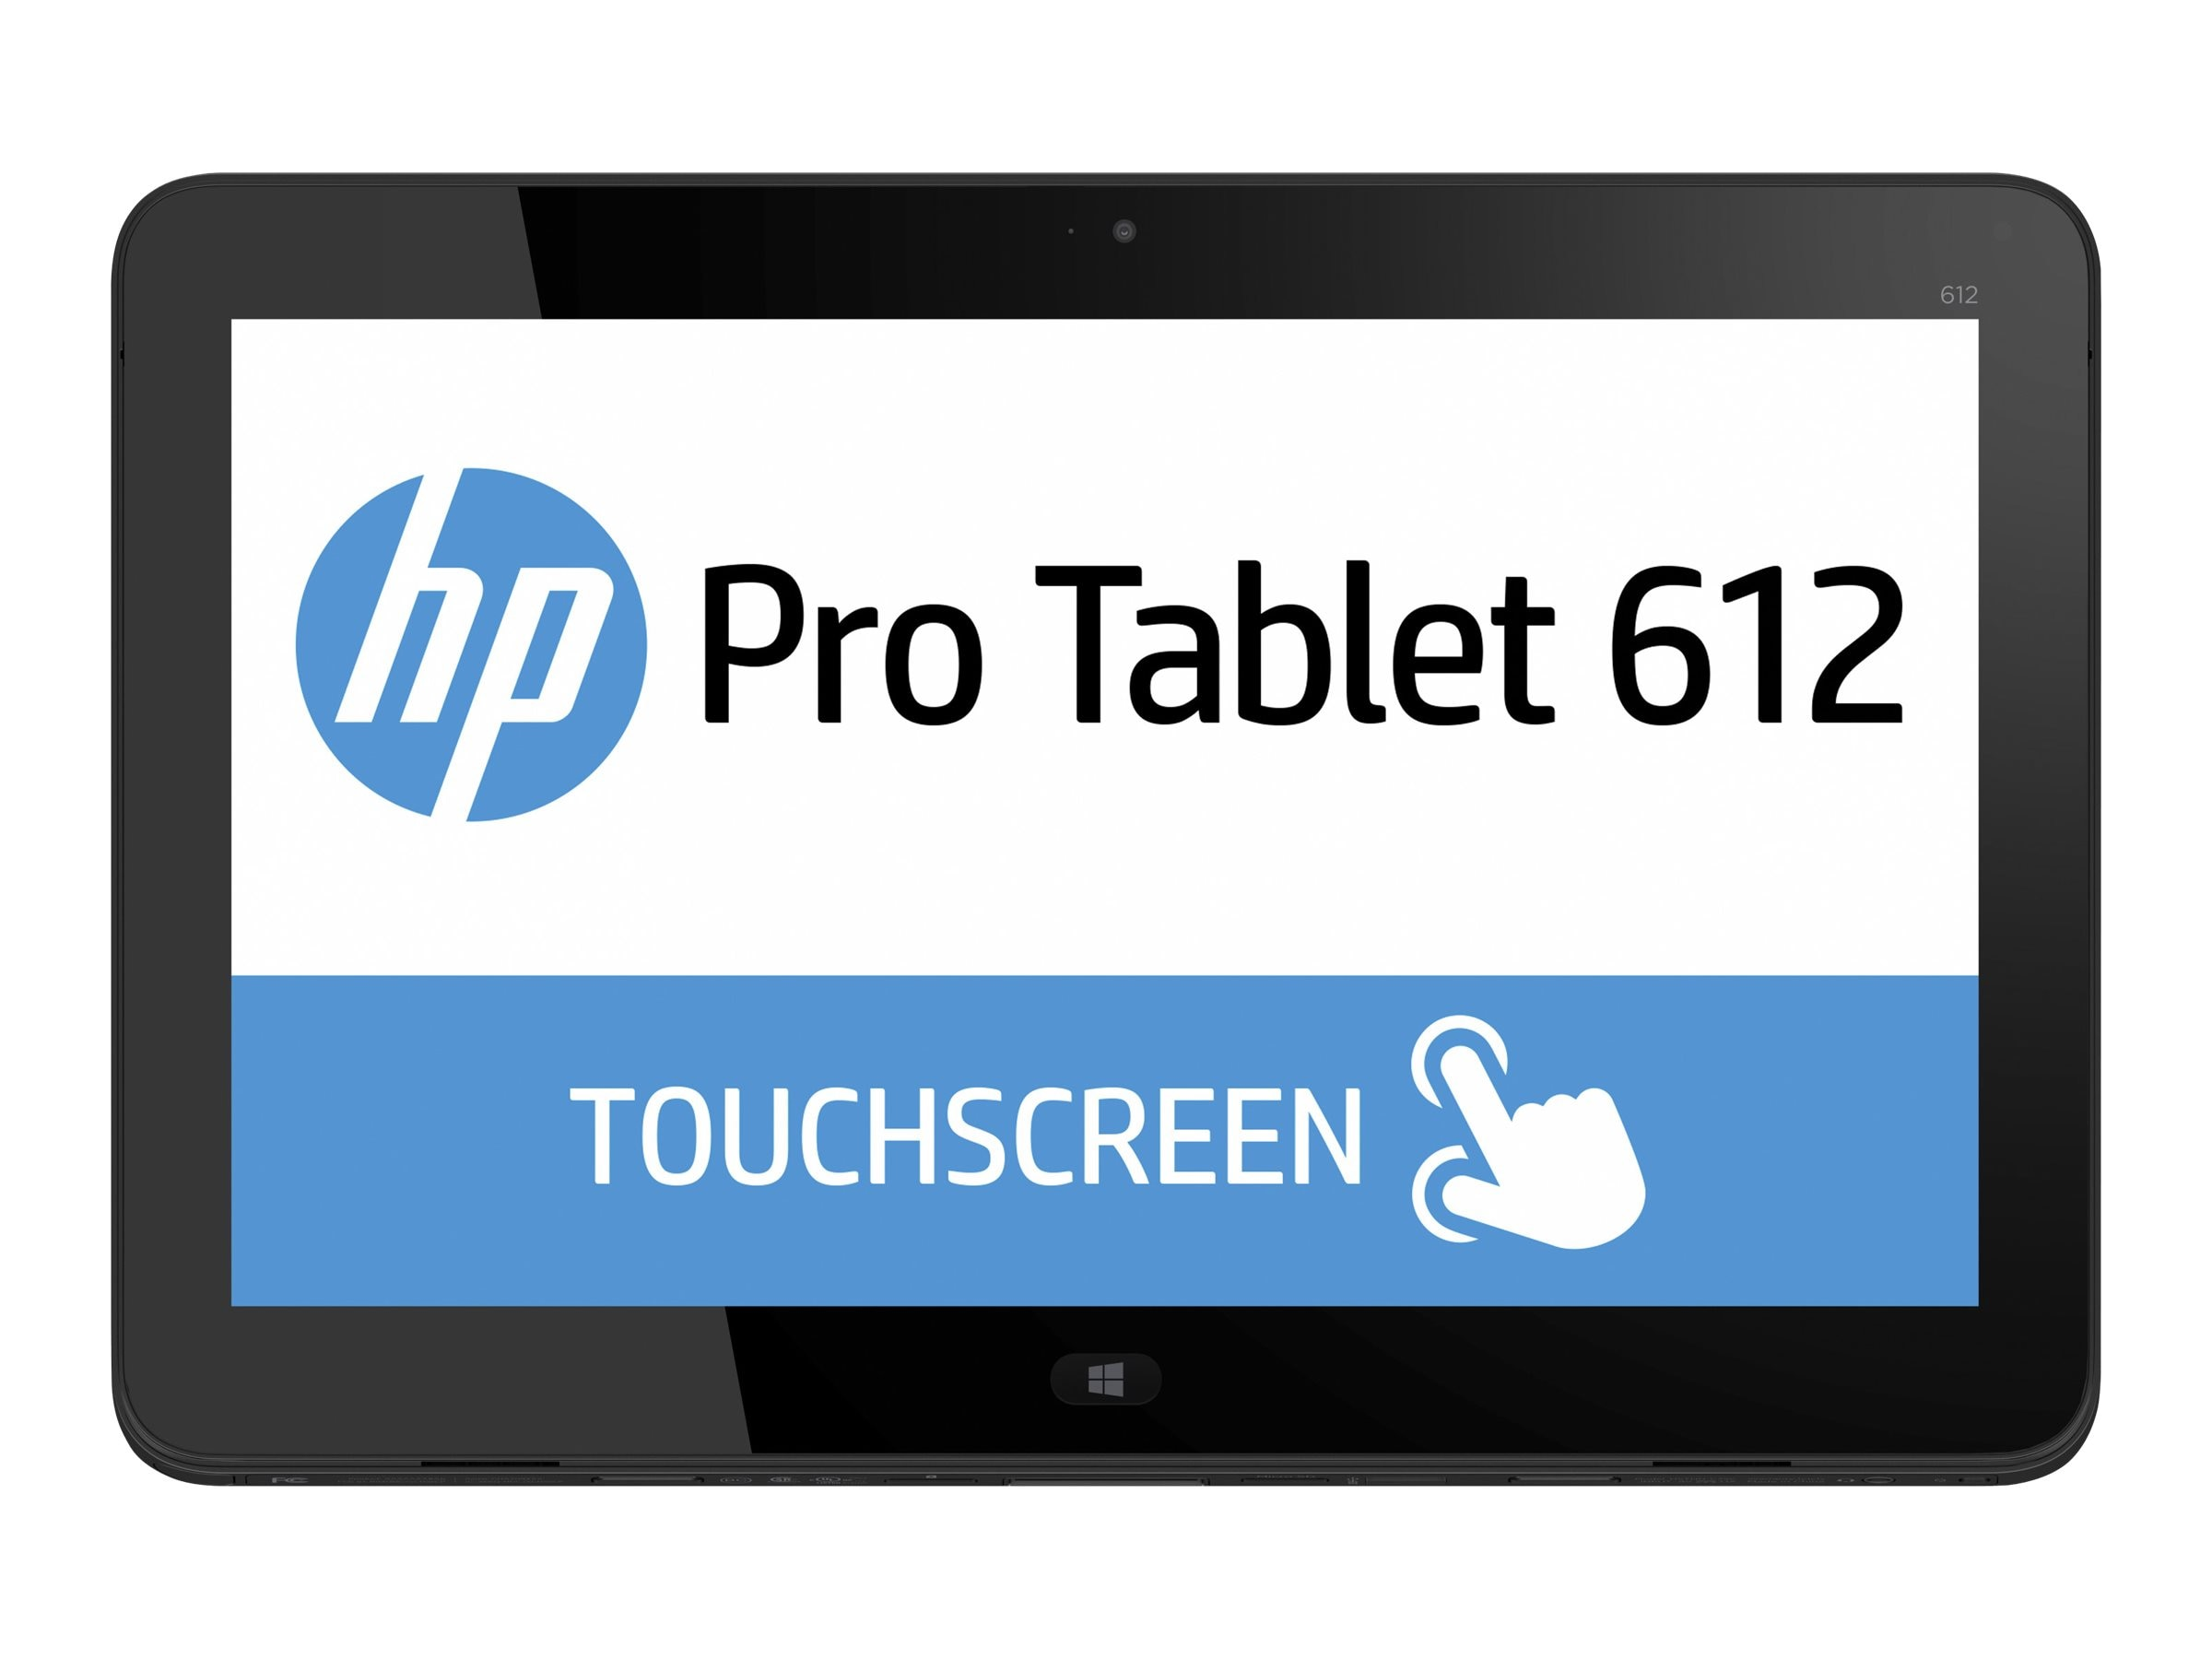 HP Pro 612 x2 G1 1.6GHz processor Windows 10 Pro 64-bit Edition